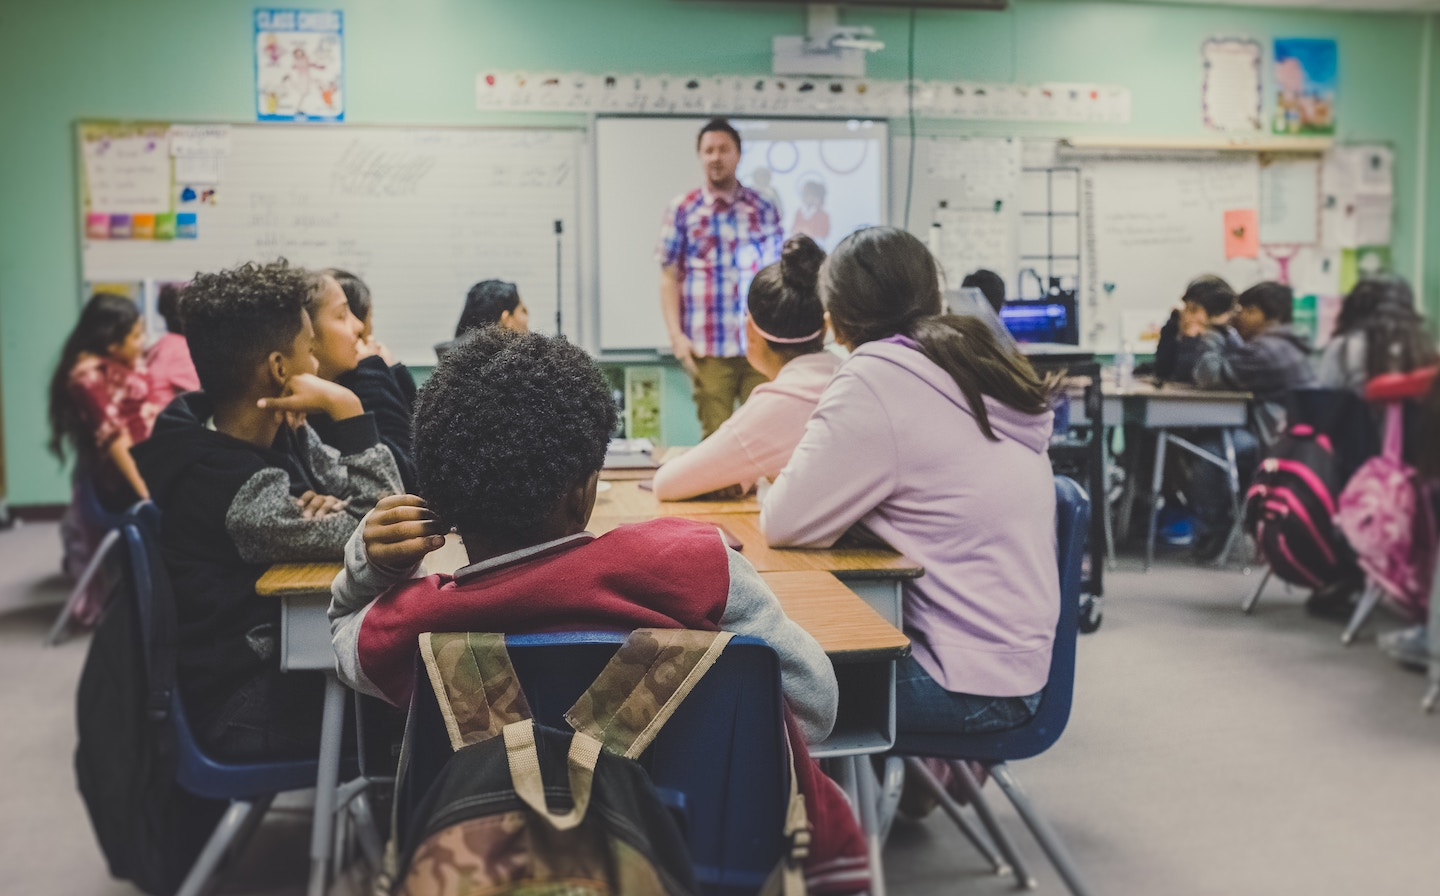 A tuition centre's classroom full of students and a teacher